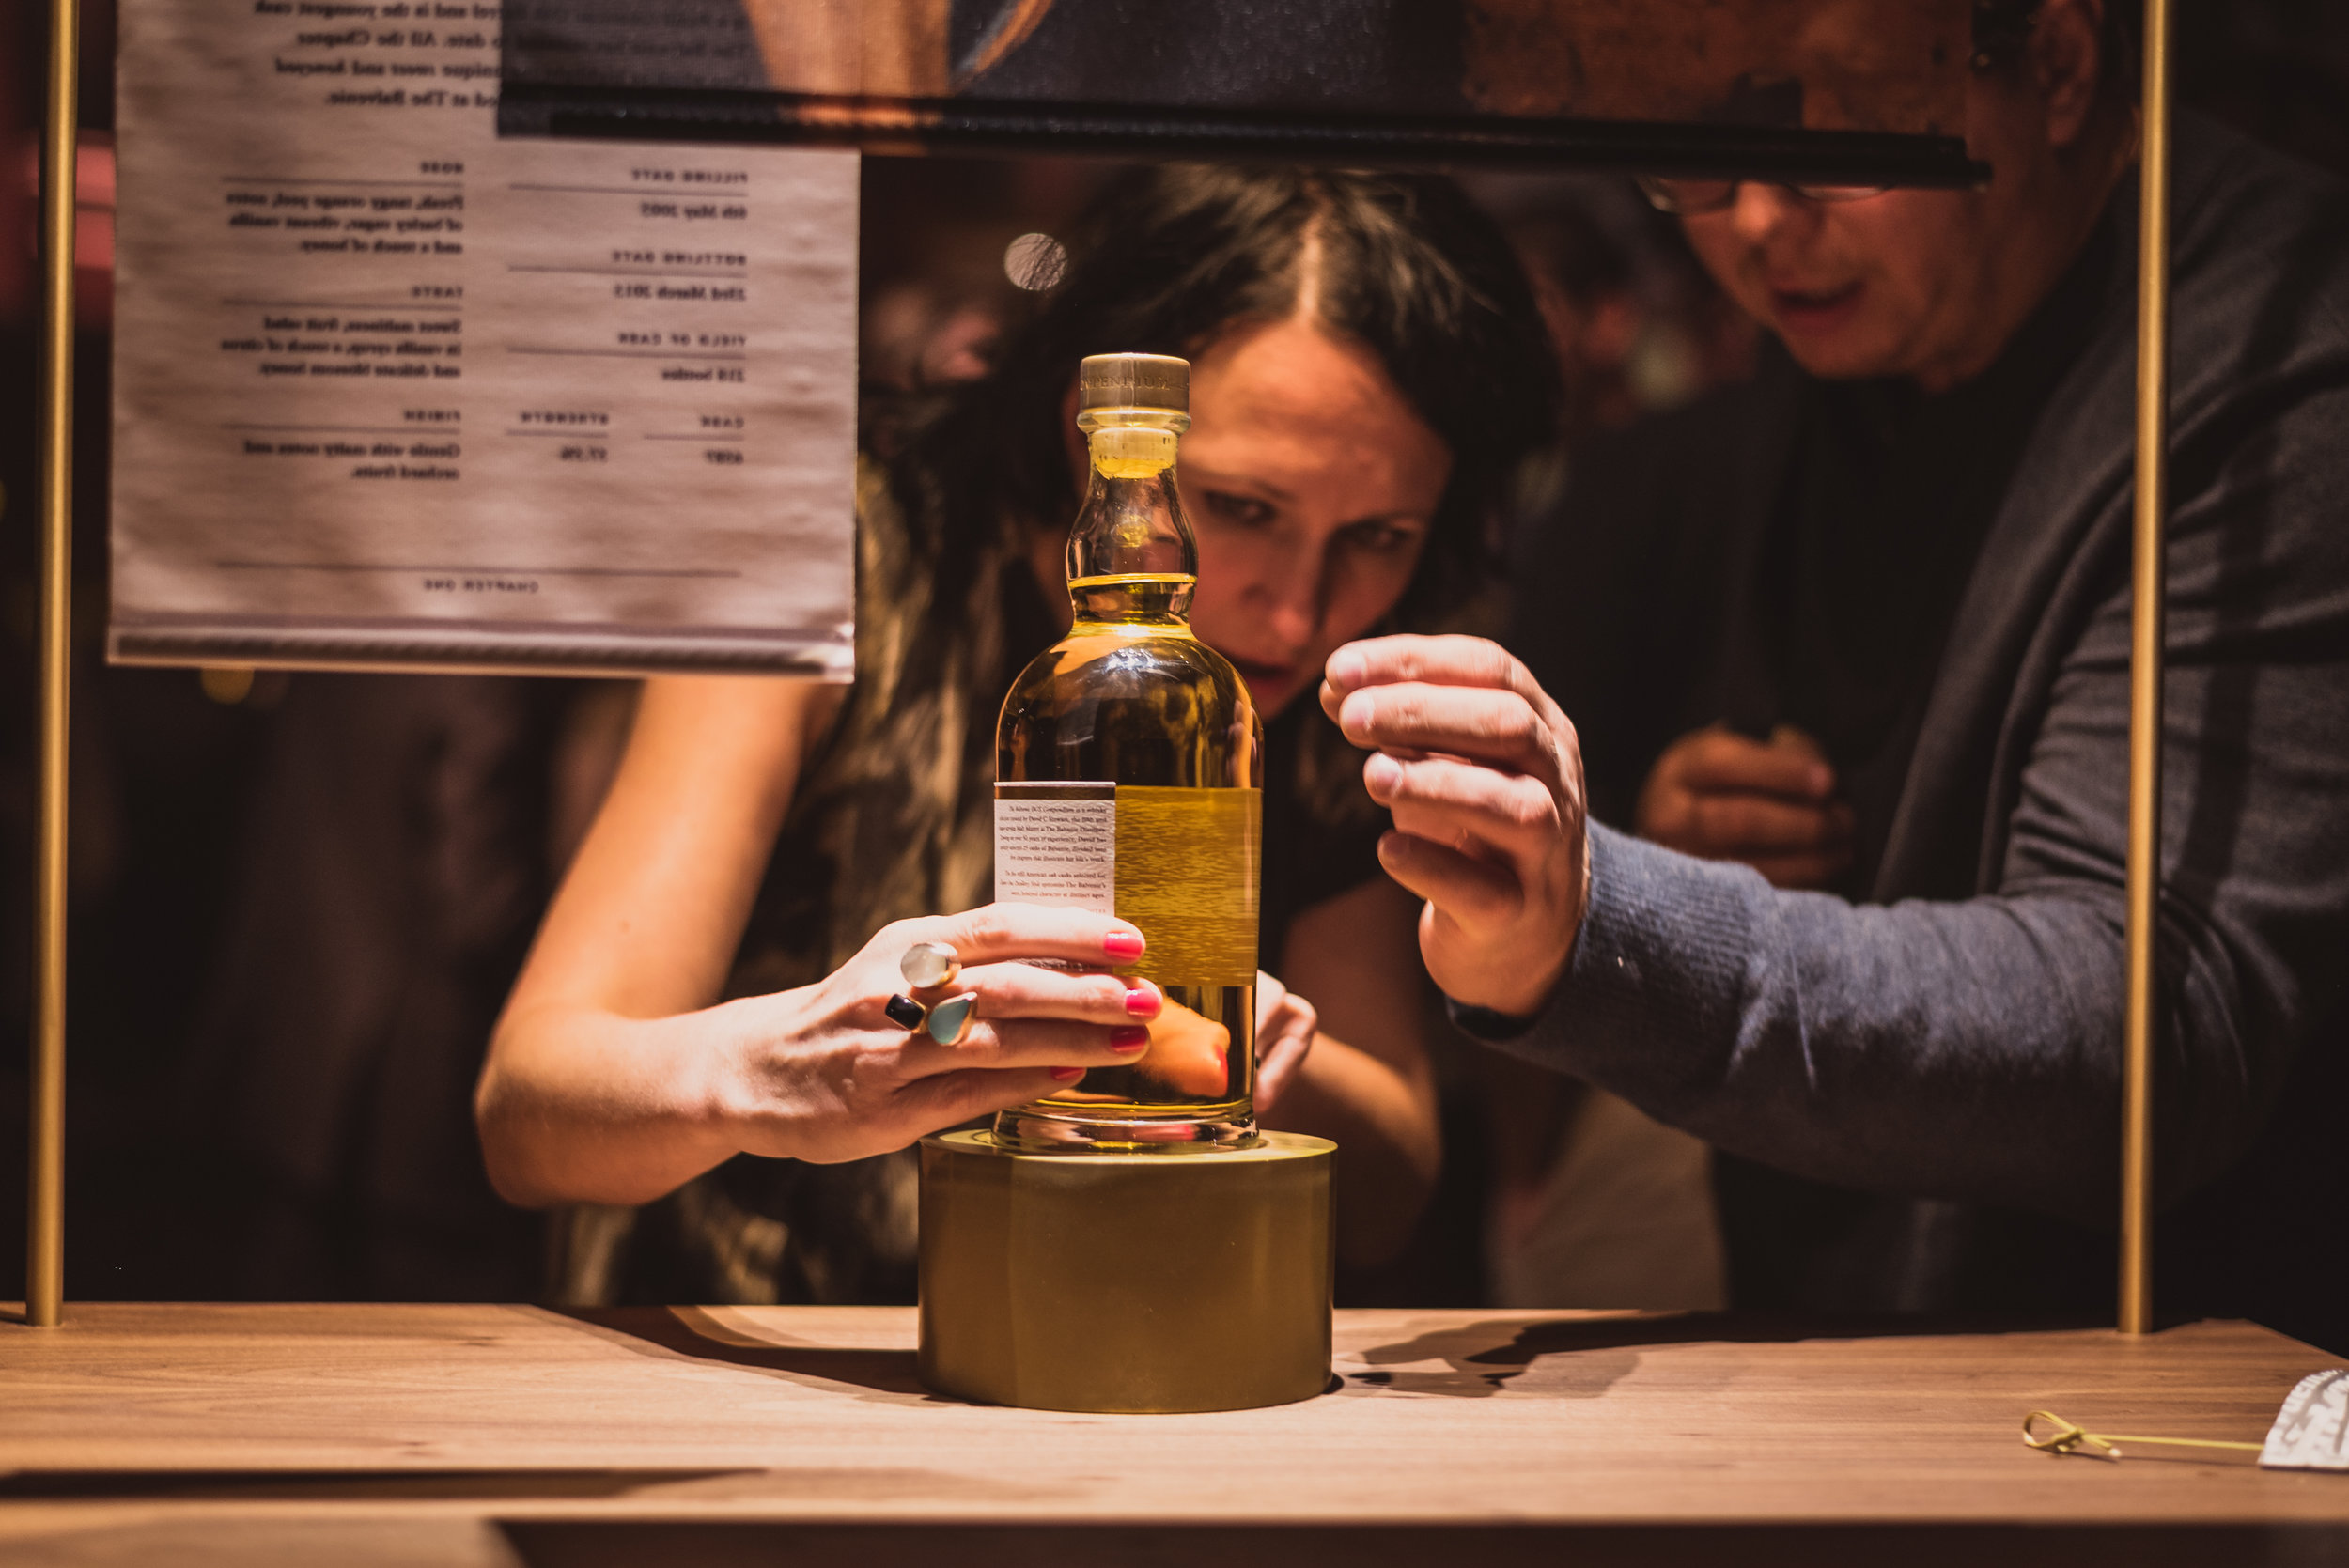 The handcrafted single malt crafted at The Balvenie requires careful handling.